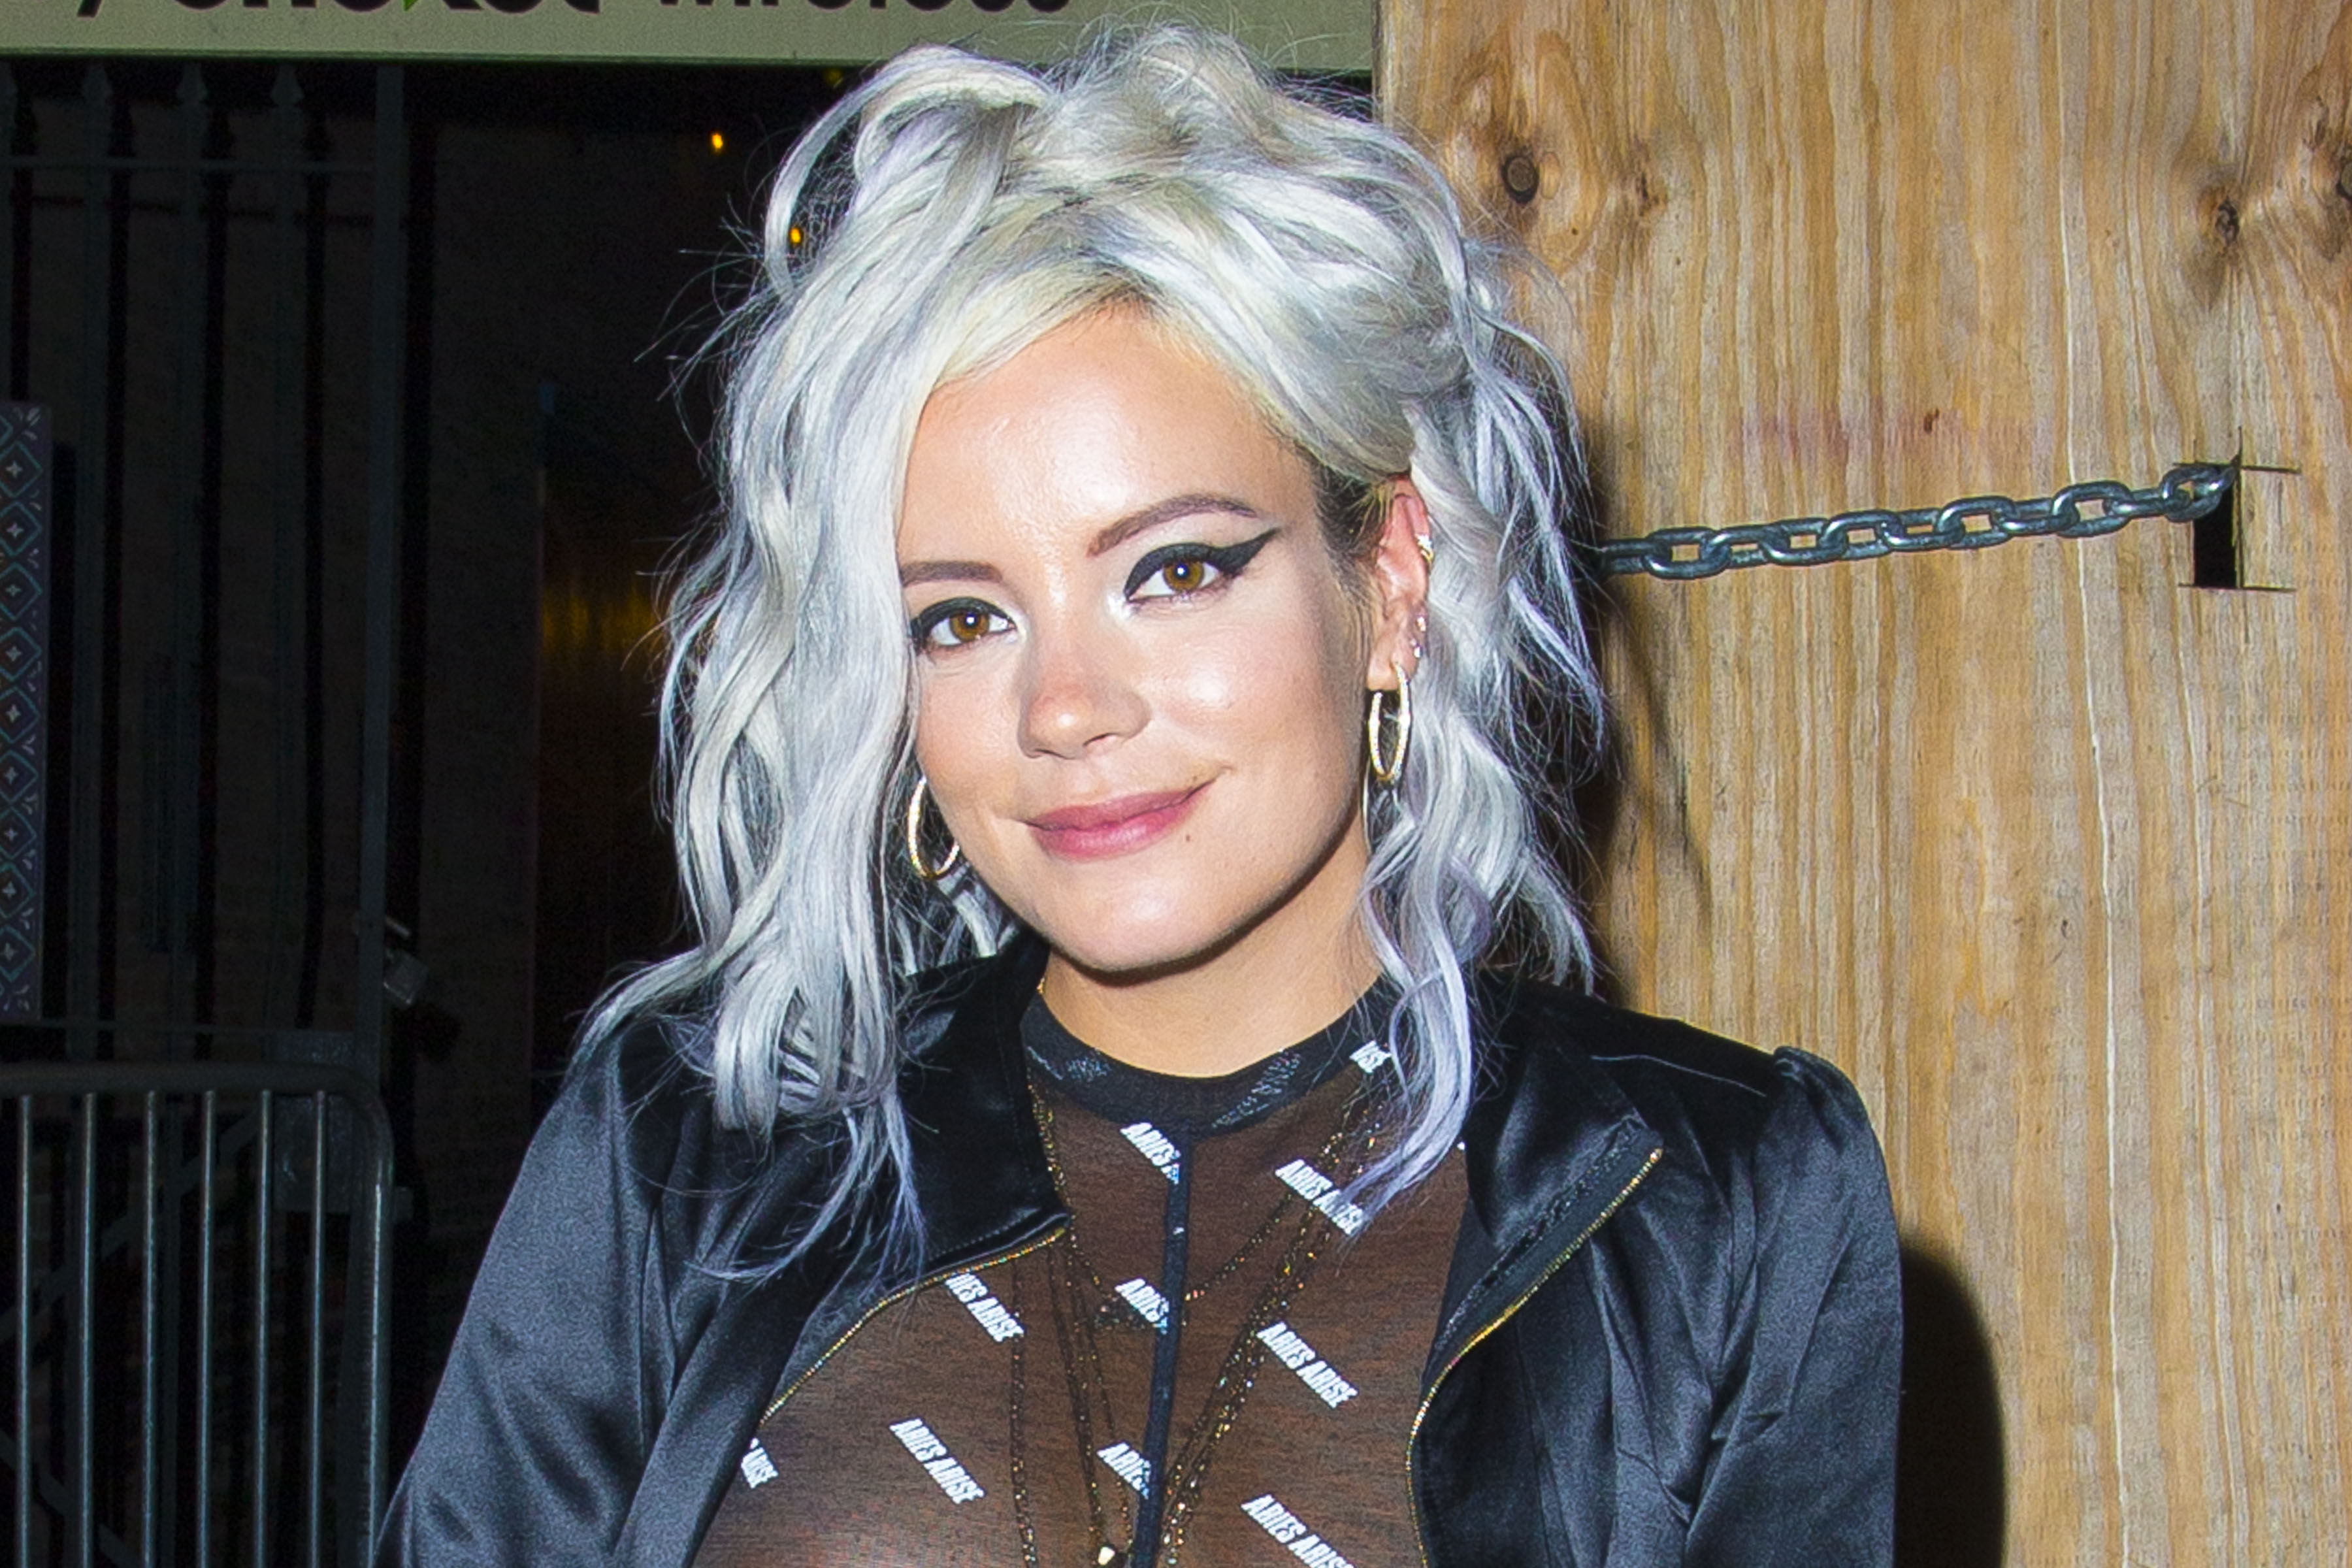 0919040324152_10_Lily-Allen-See-Through-TheFappeningBlog.com-11.jpg